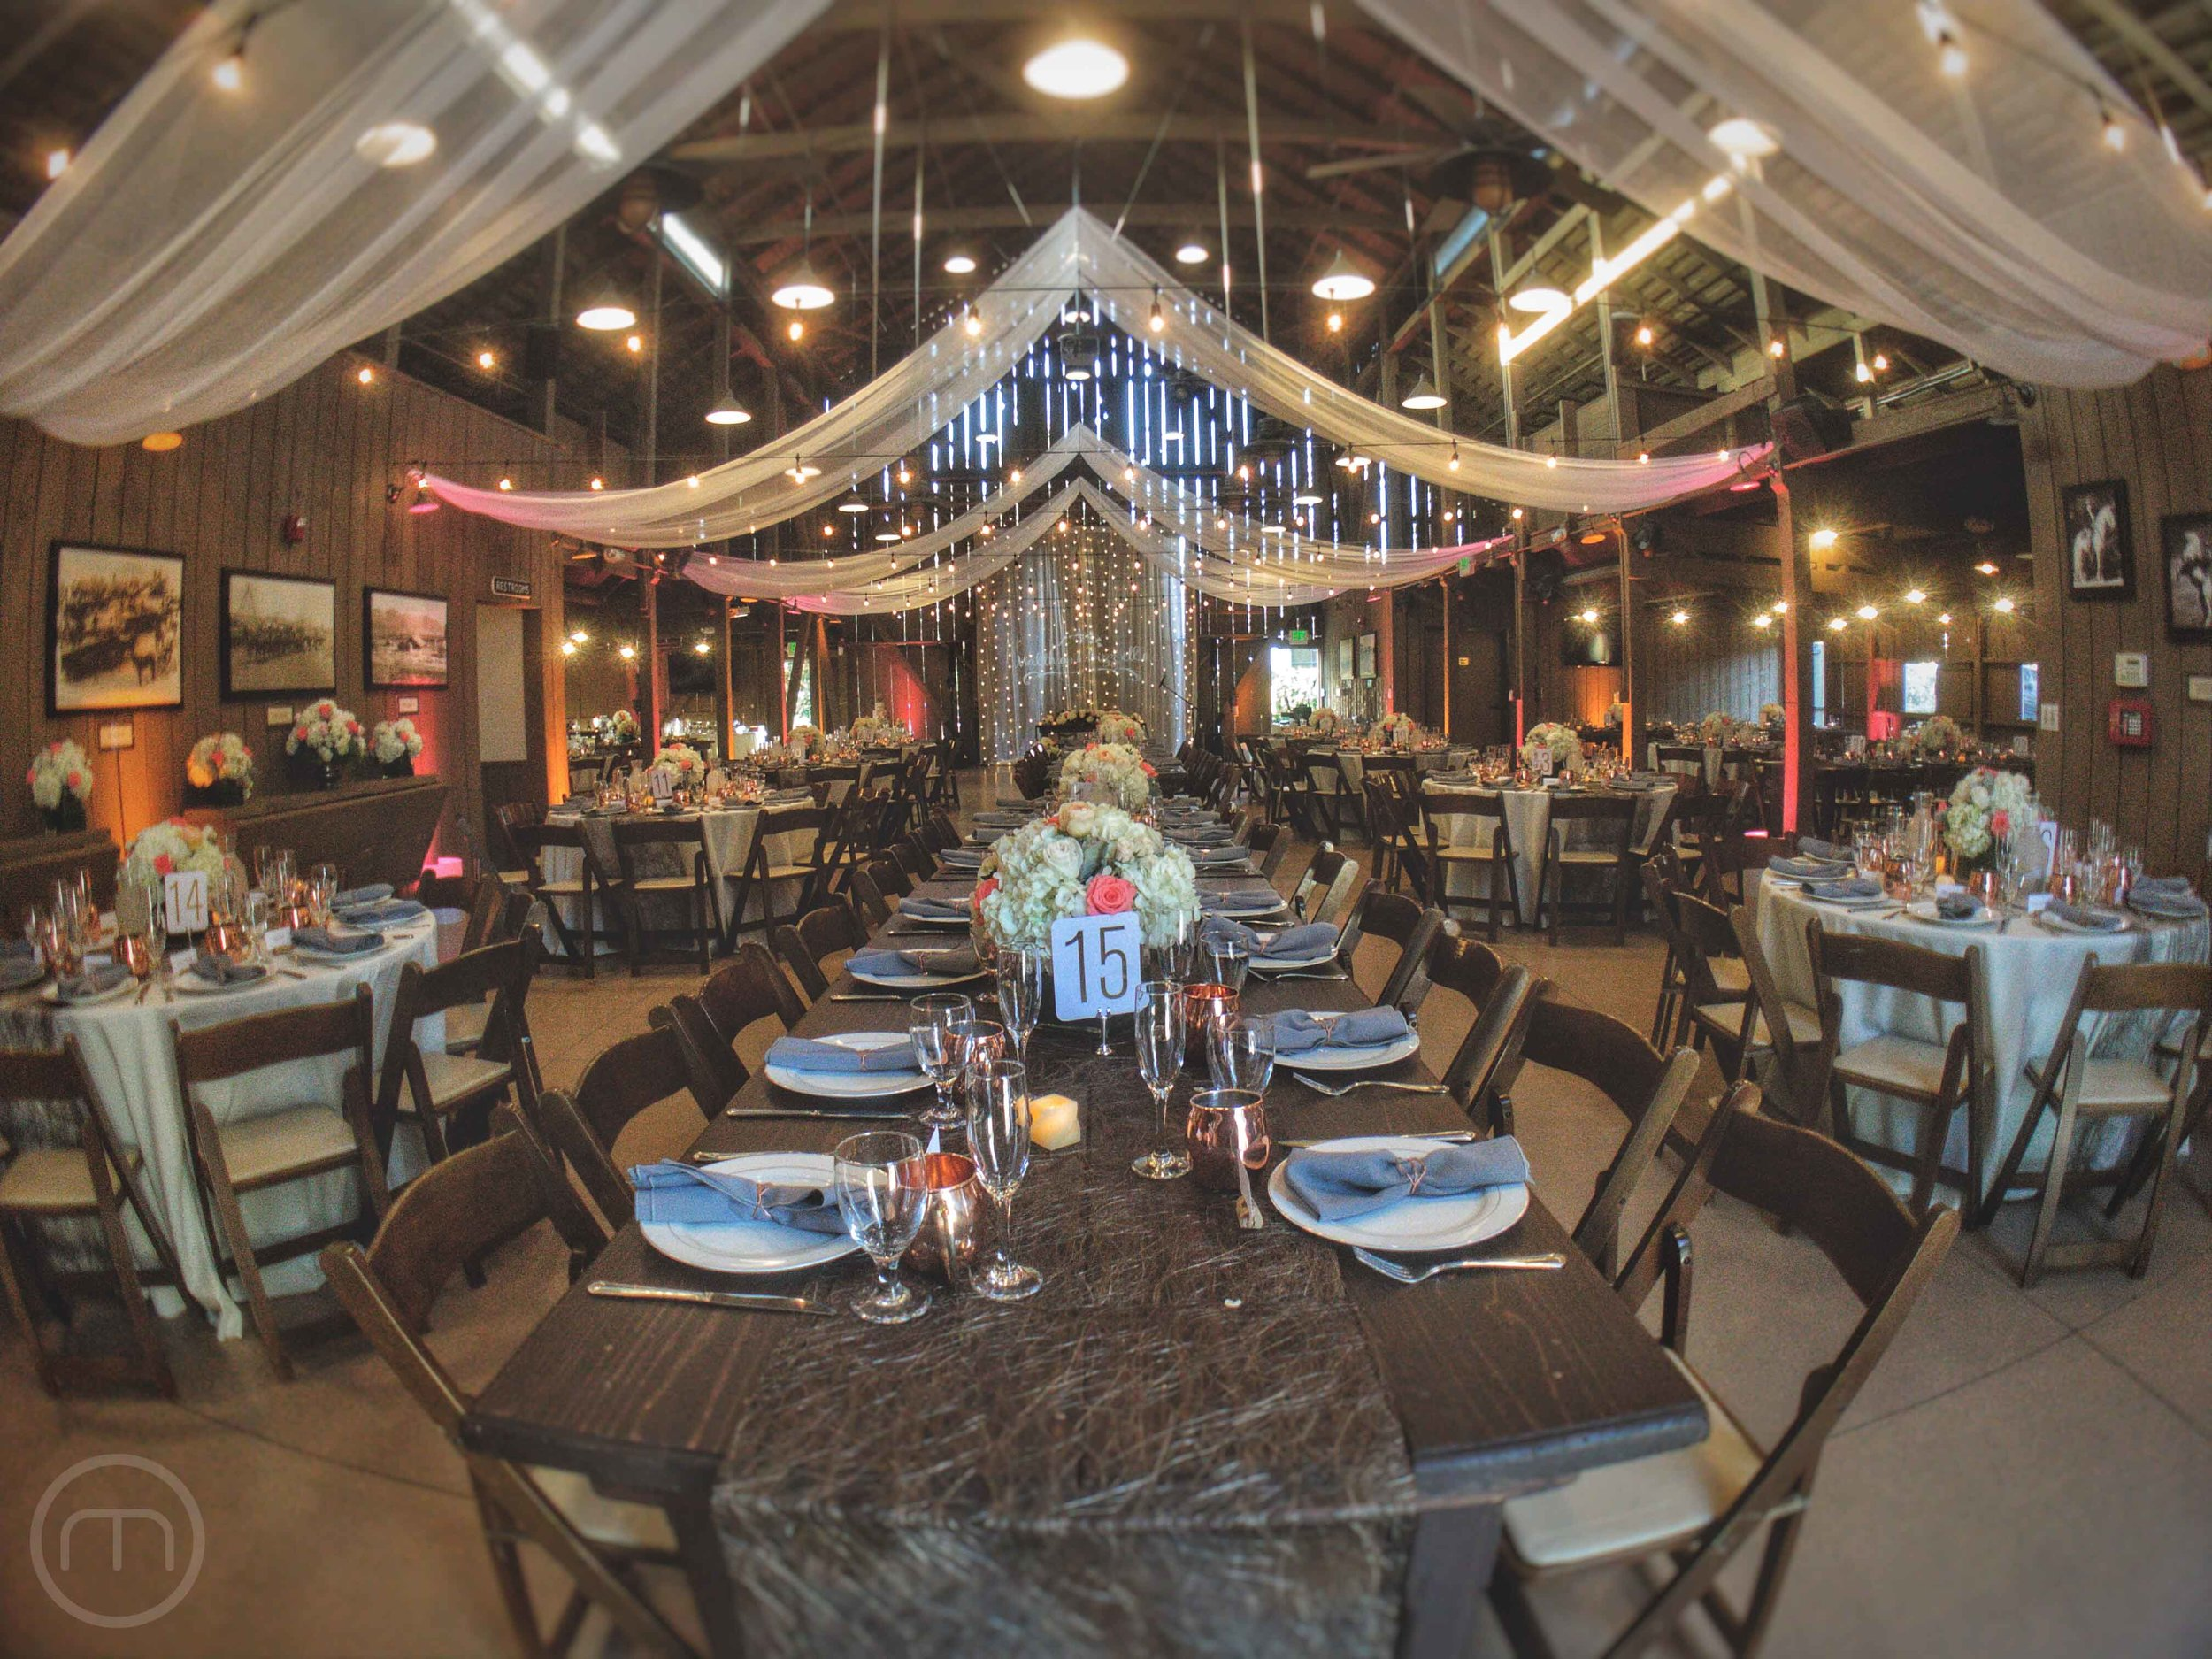 Camarillo-Home-Ranch-Wedding-DJ.jpg